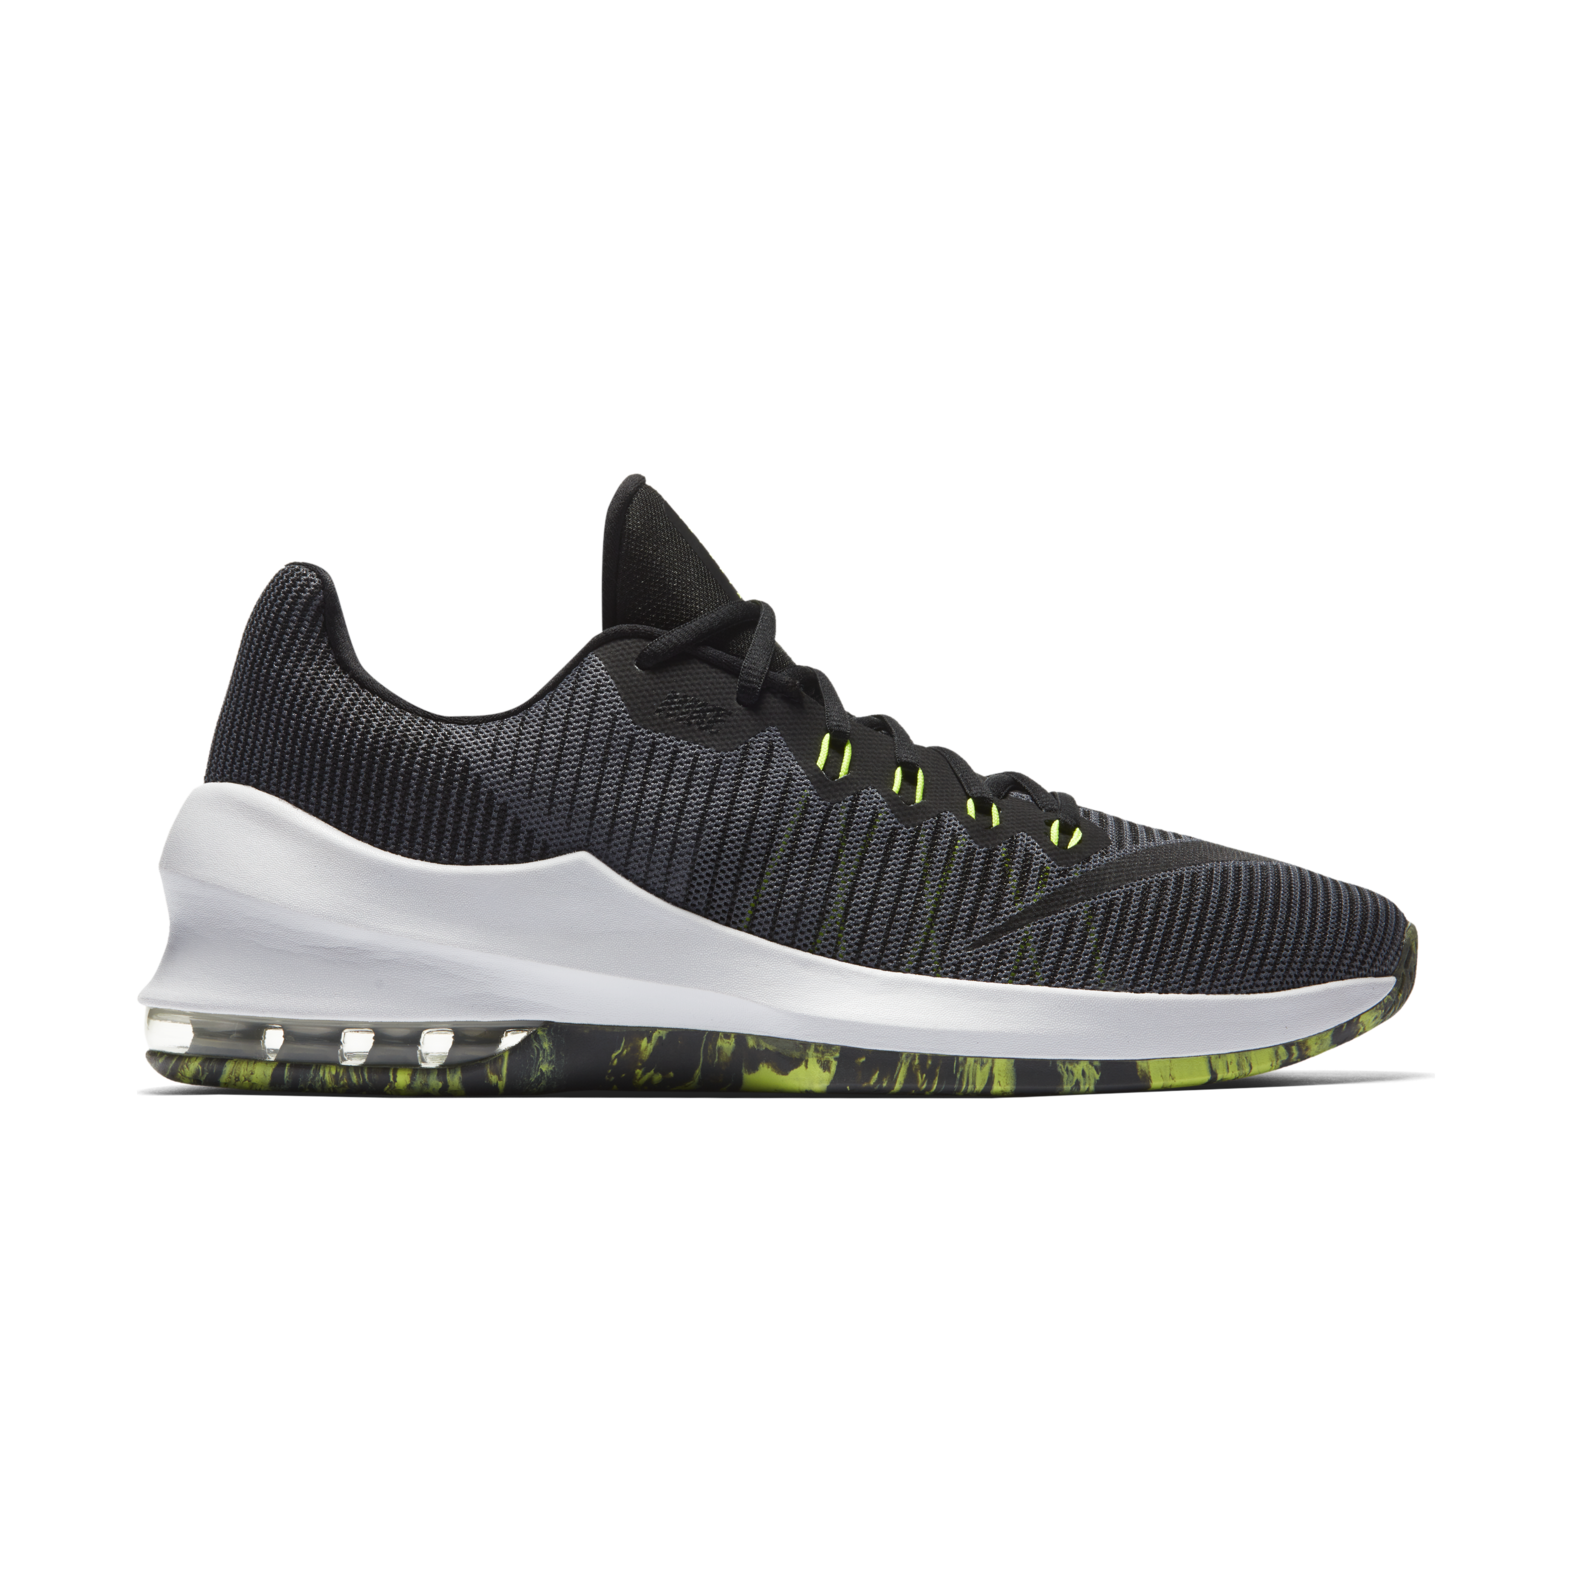 NIKE AIR MAX INFURIATE 2 LOW MENS Poobie Naidoos